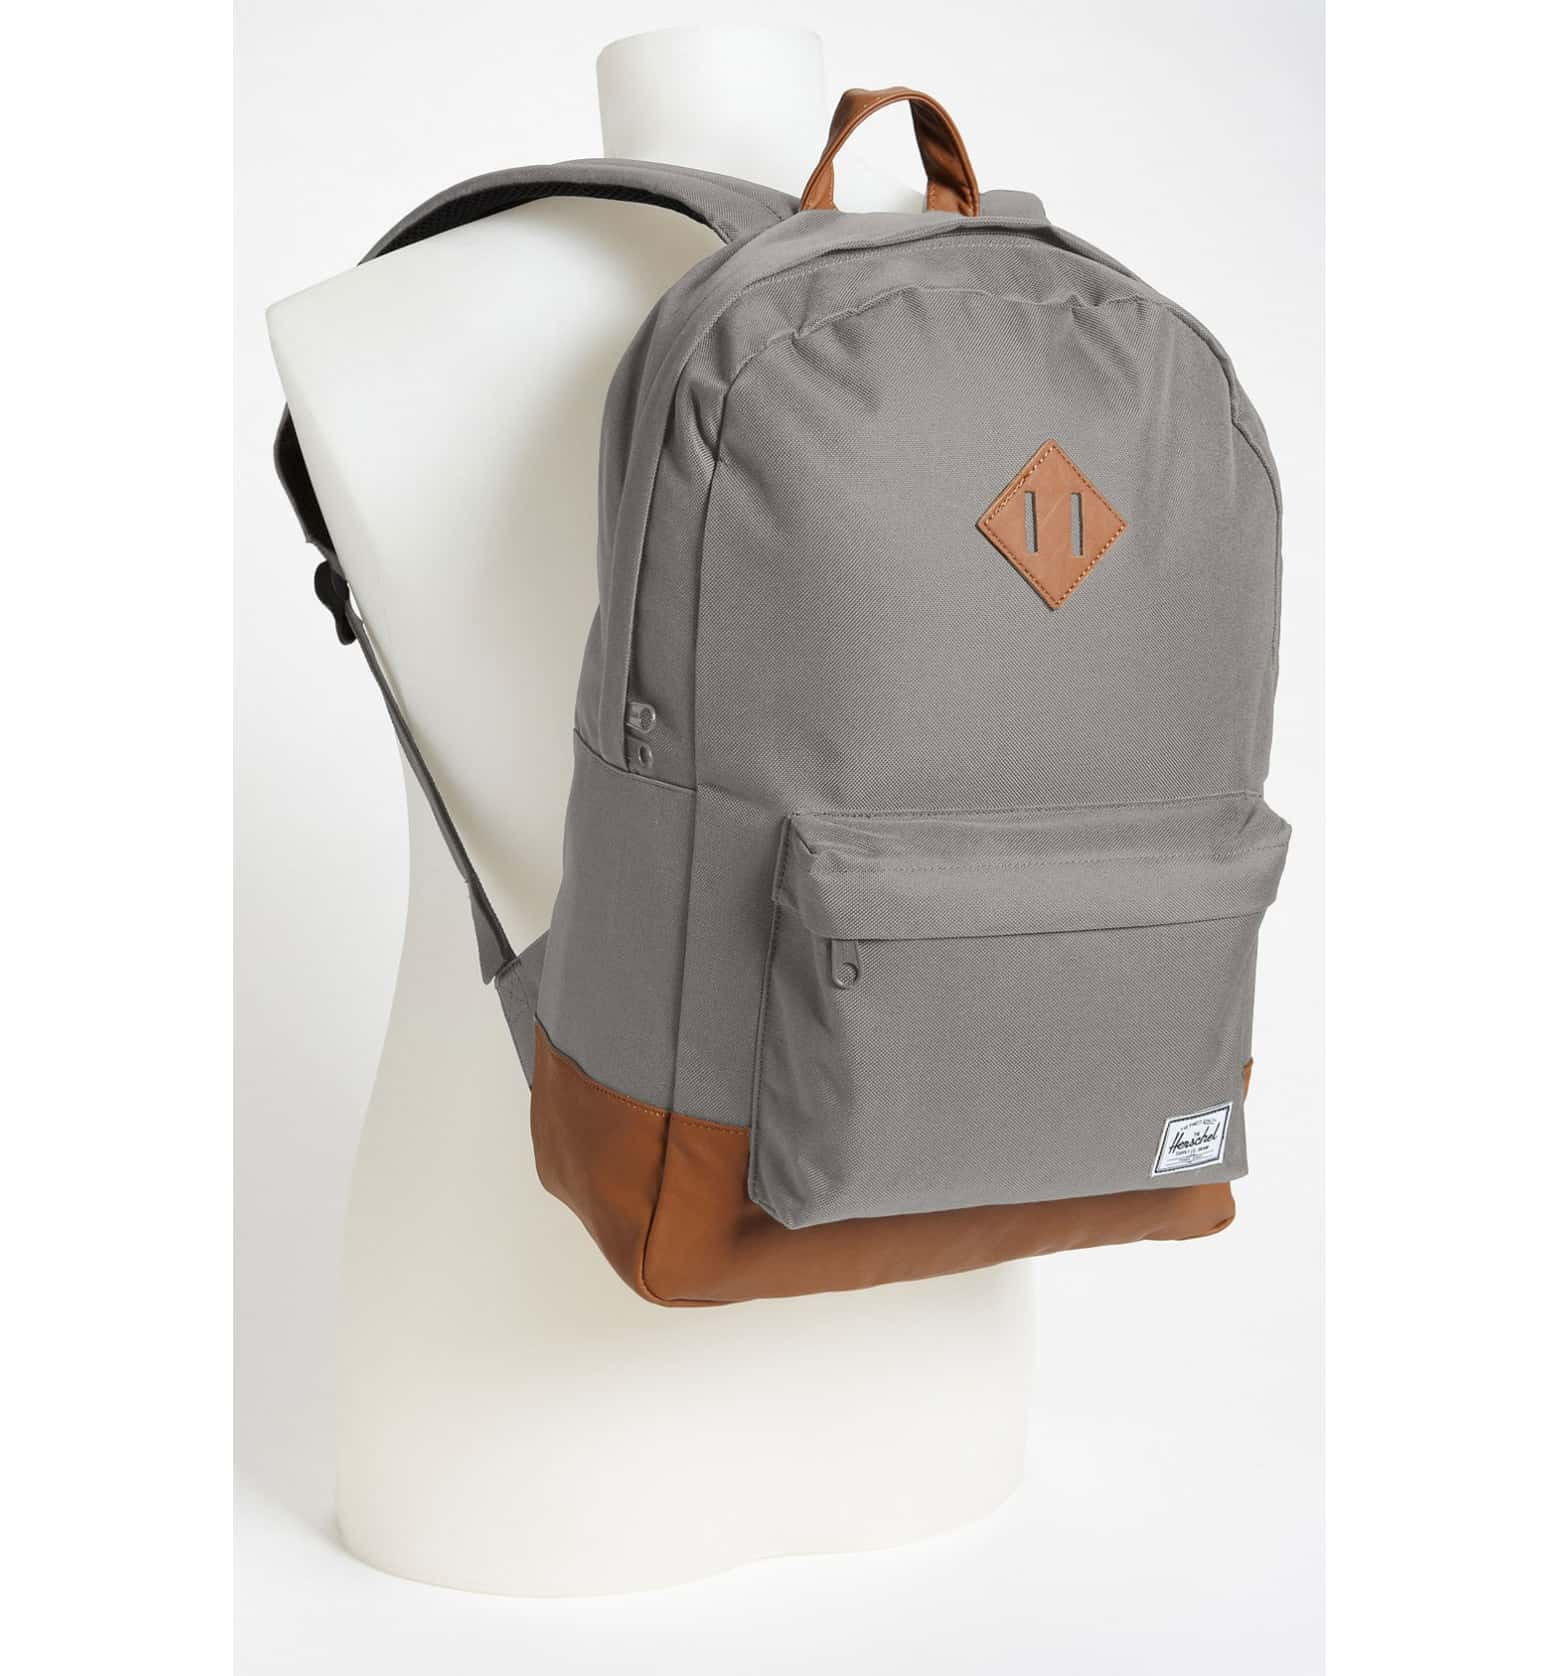 herschel backpack.jpeg